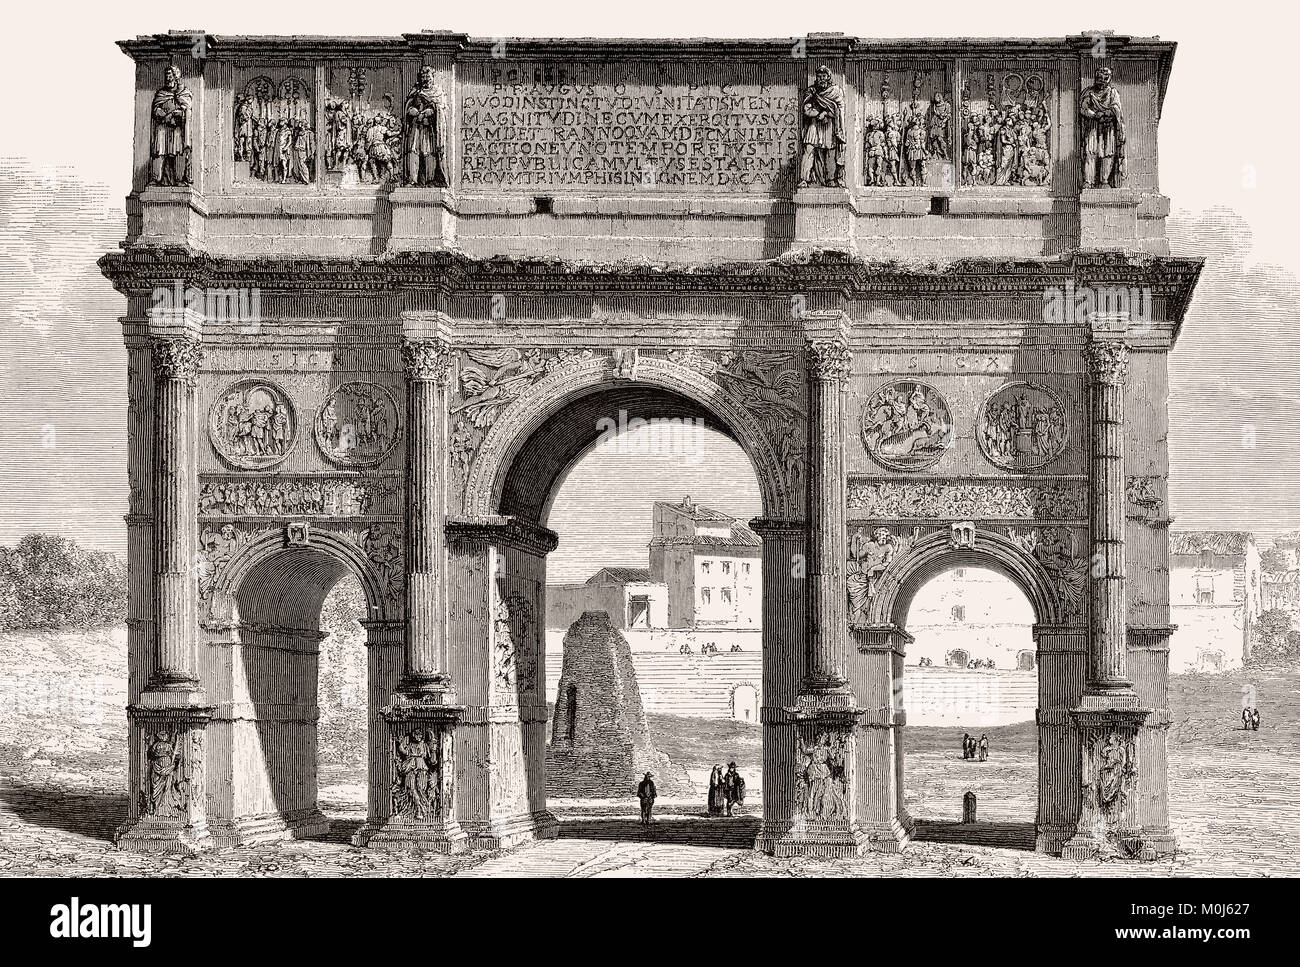 The Arch of Constantine, Via triumphalis, Rome, Italy, 19th Century - Stock Image